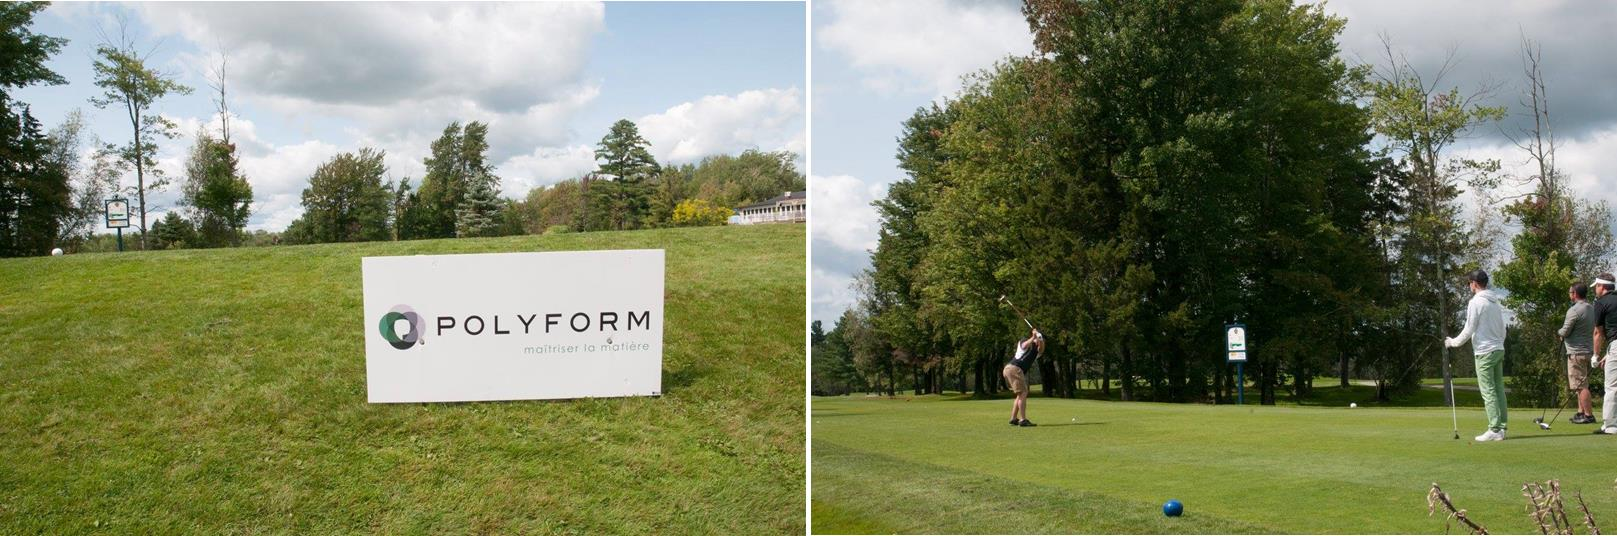 Polyform - De La Fontaine golf